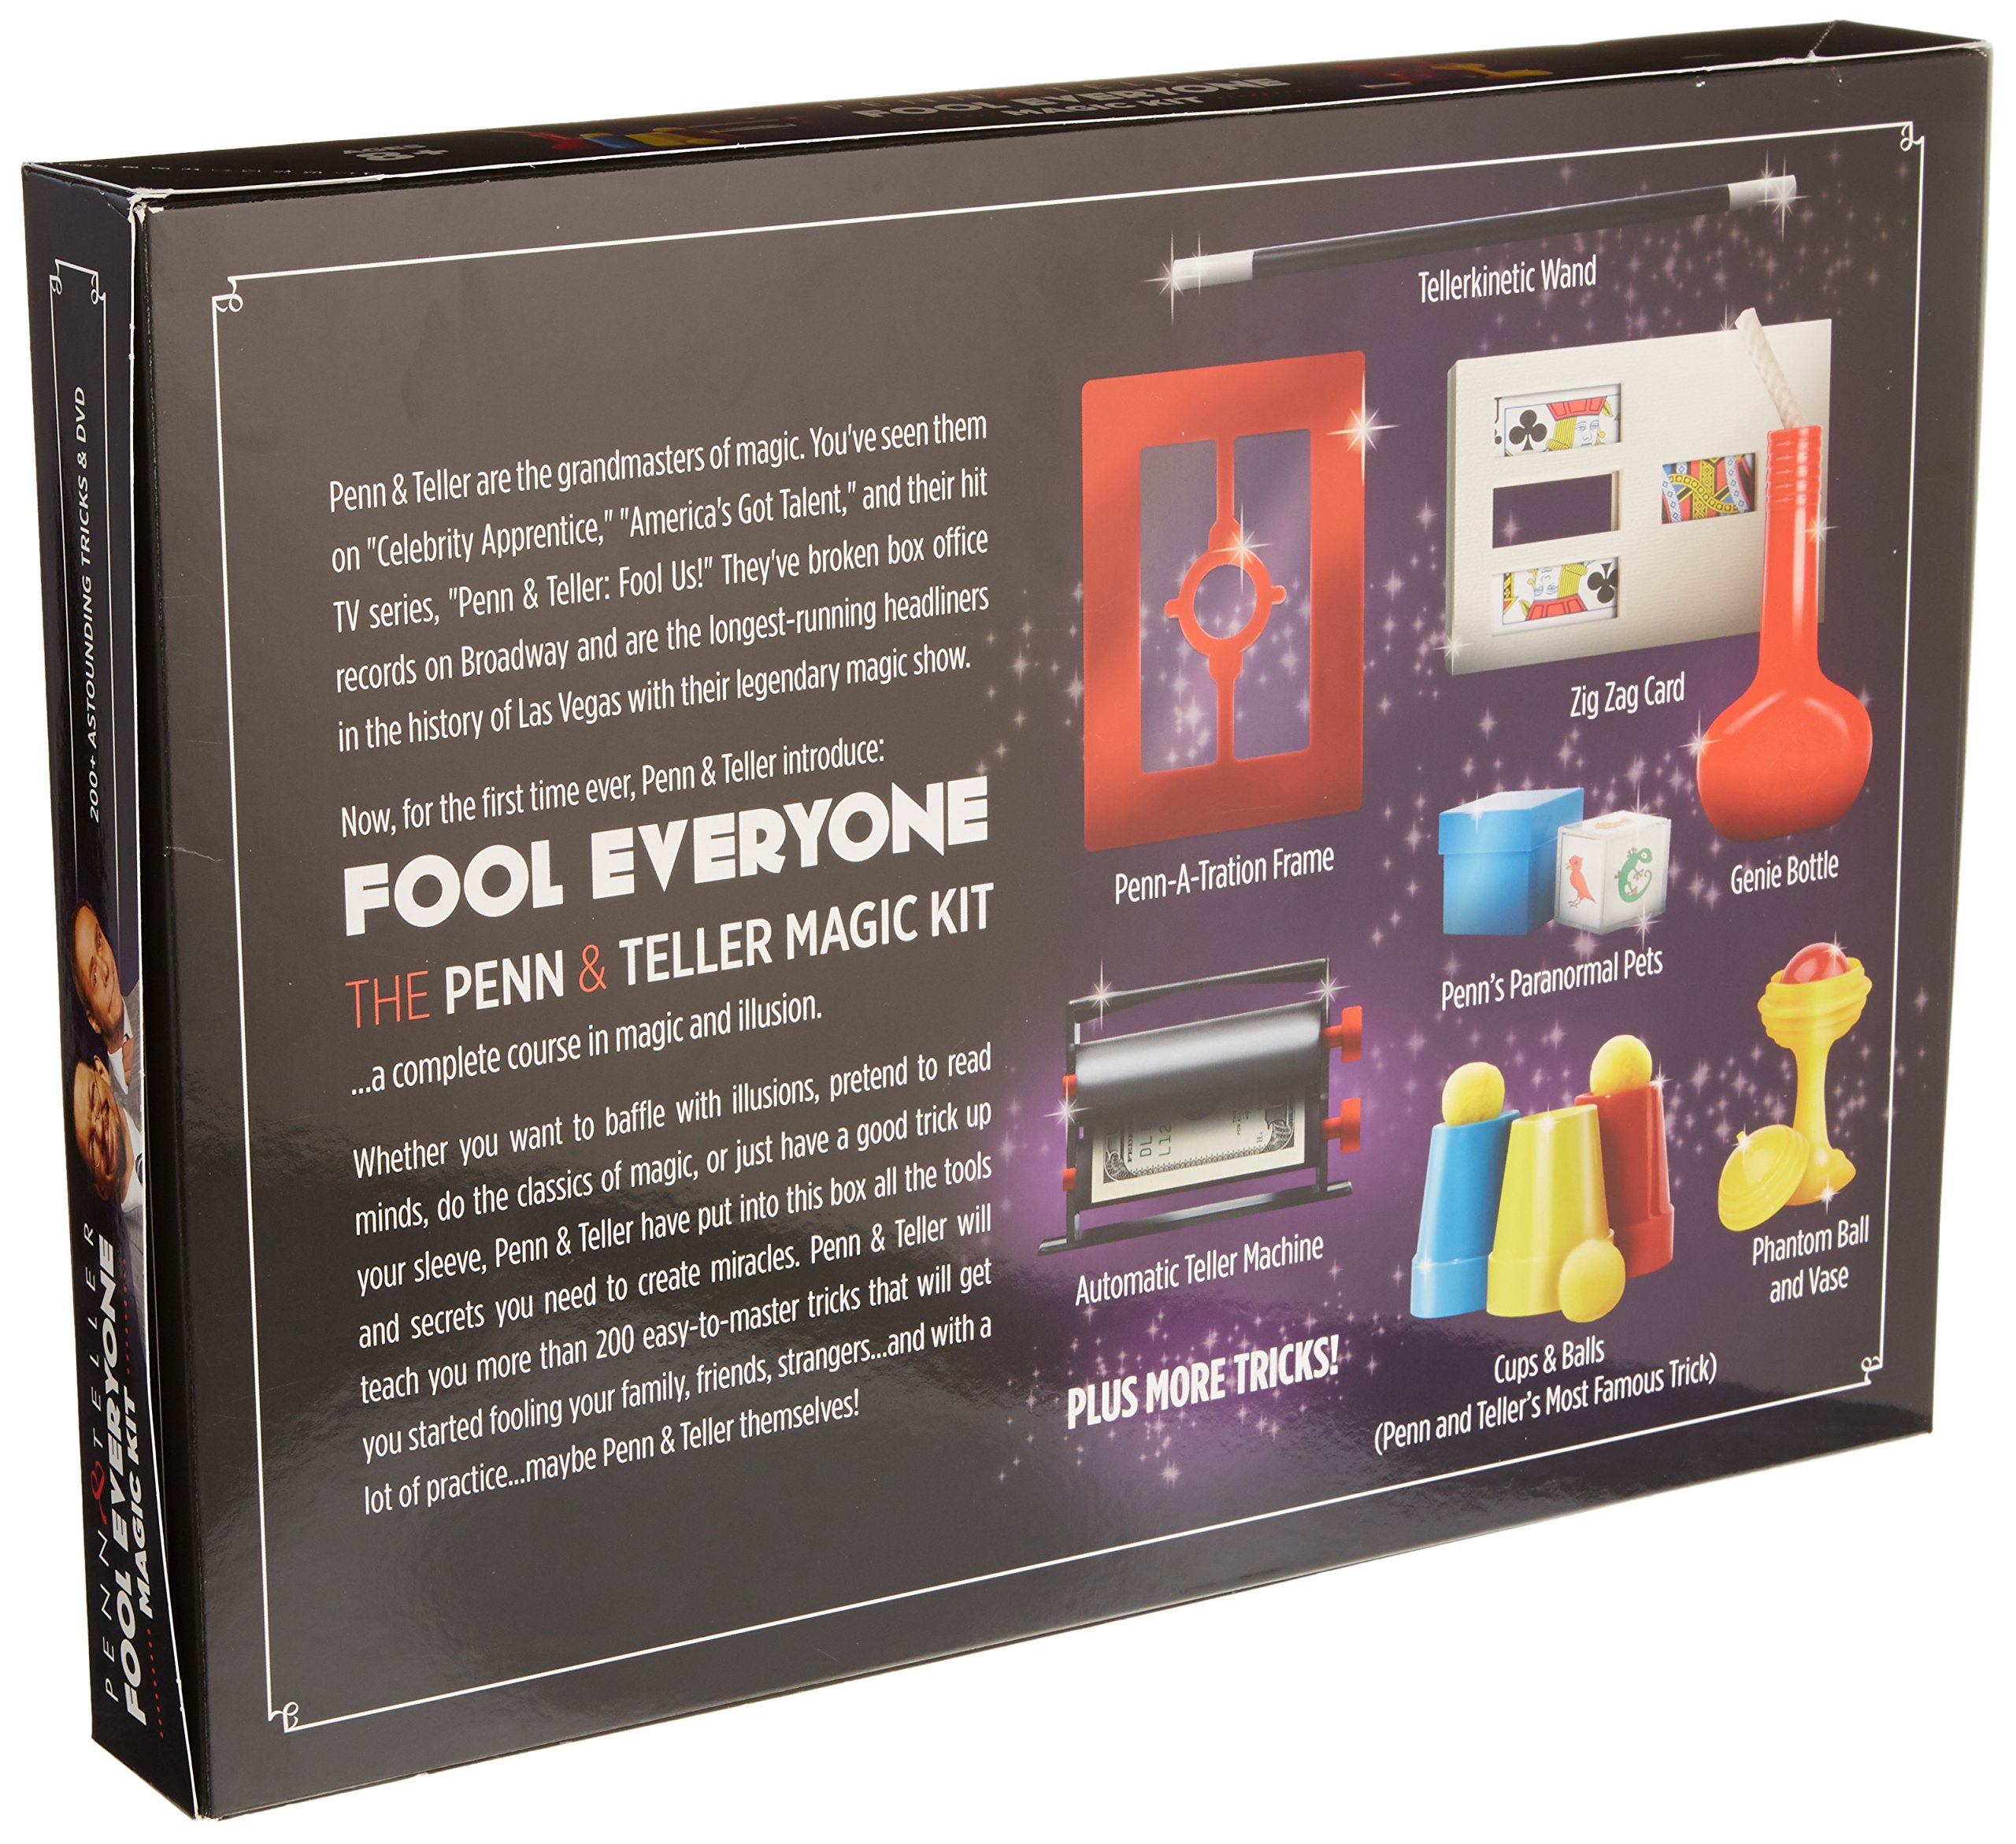 The Penn & Teller Fool Everyone Magic Kit - Over 200 Ways To Trick Your Friends by Fun Inc. (Image #3)